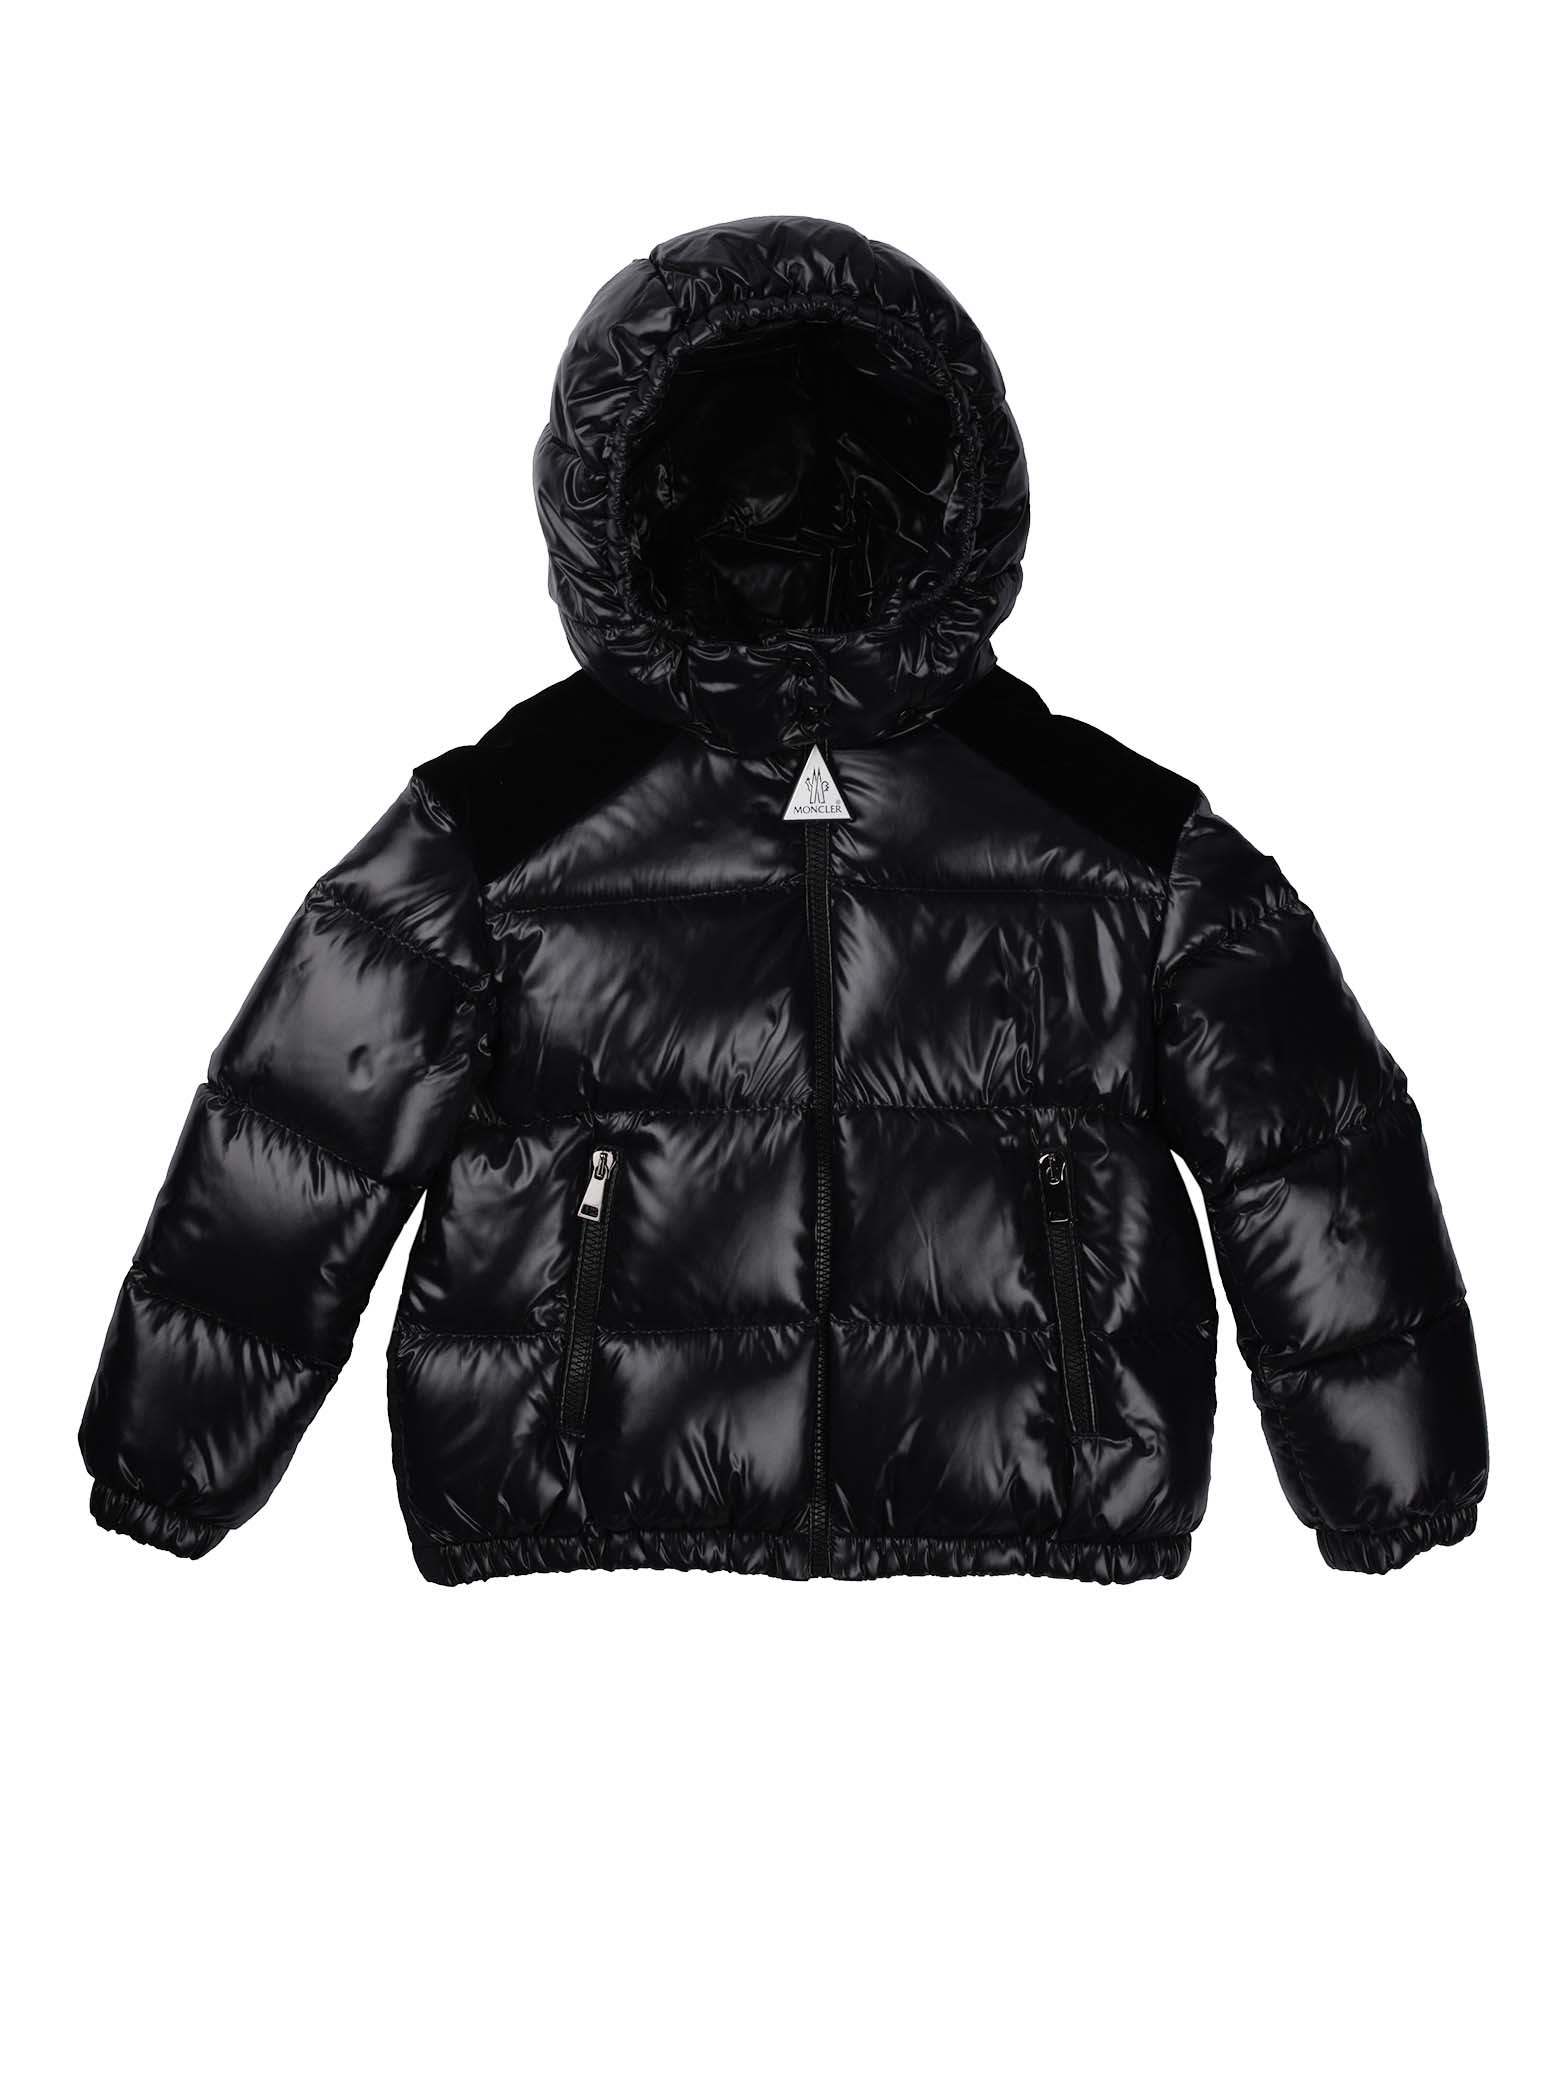 Moncler Chouelle Black Jacket With Hood